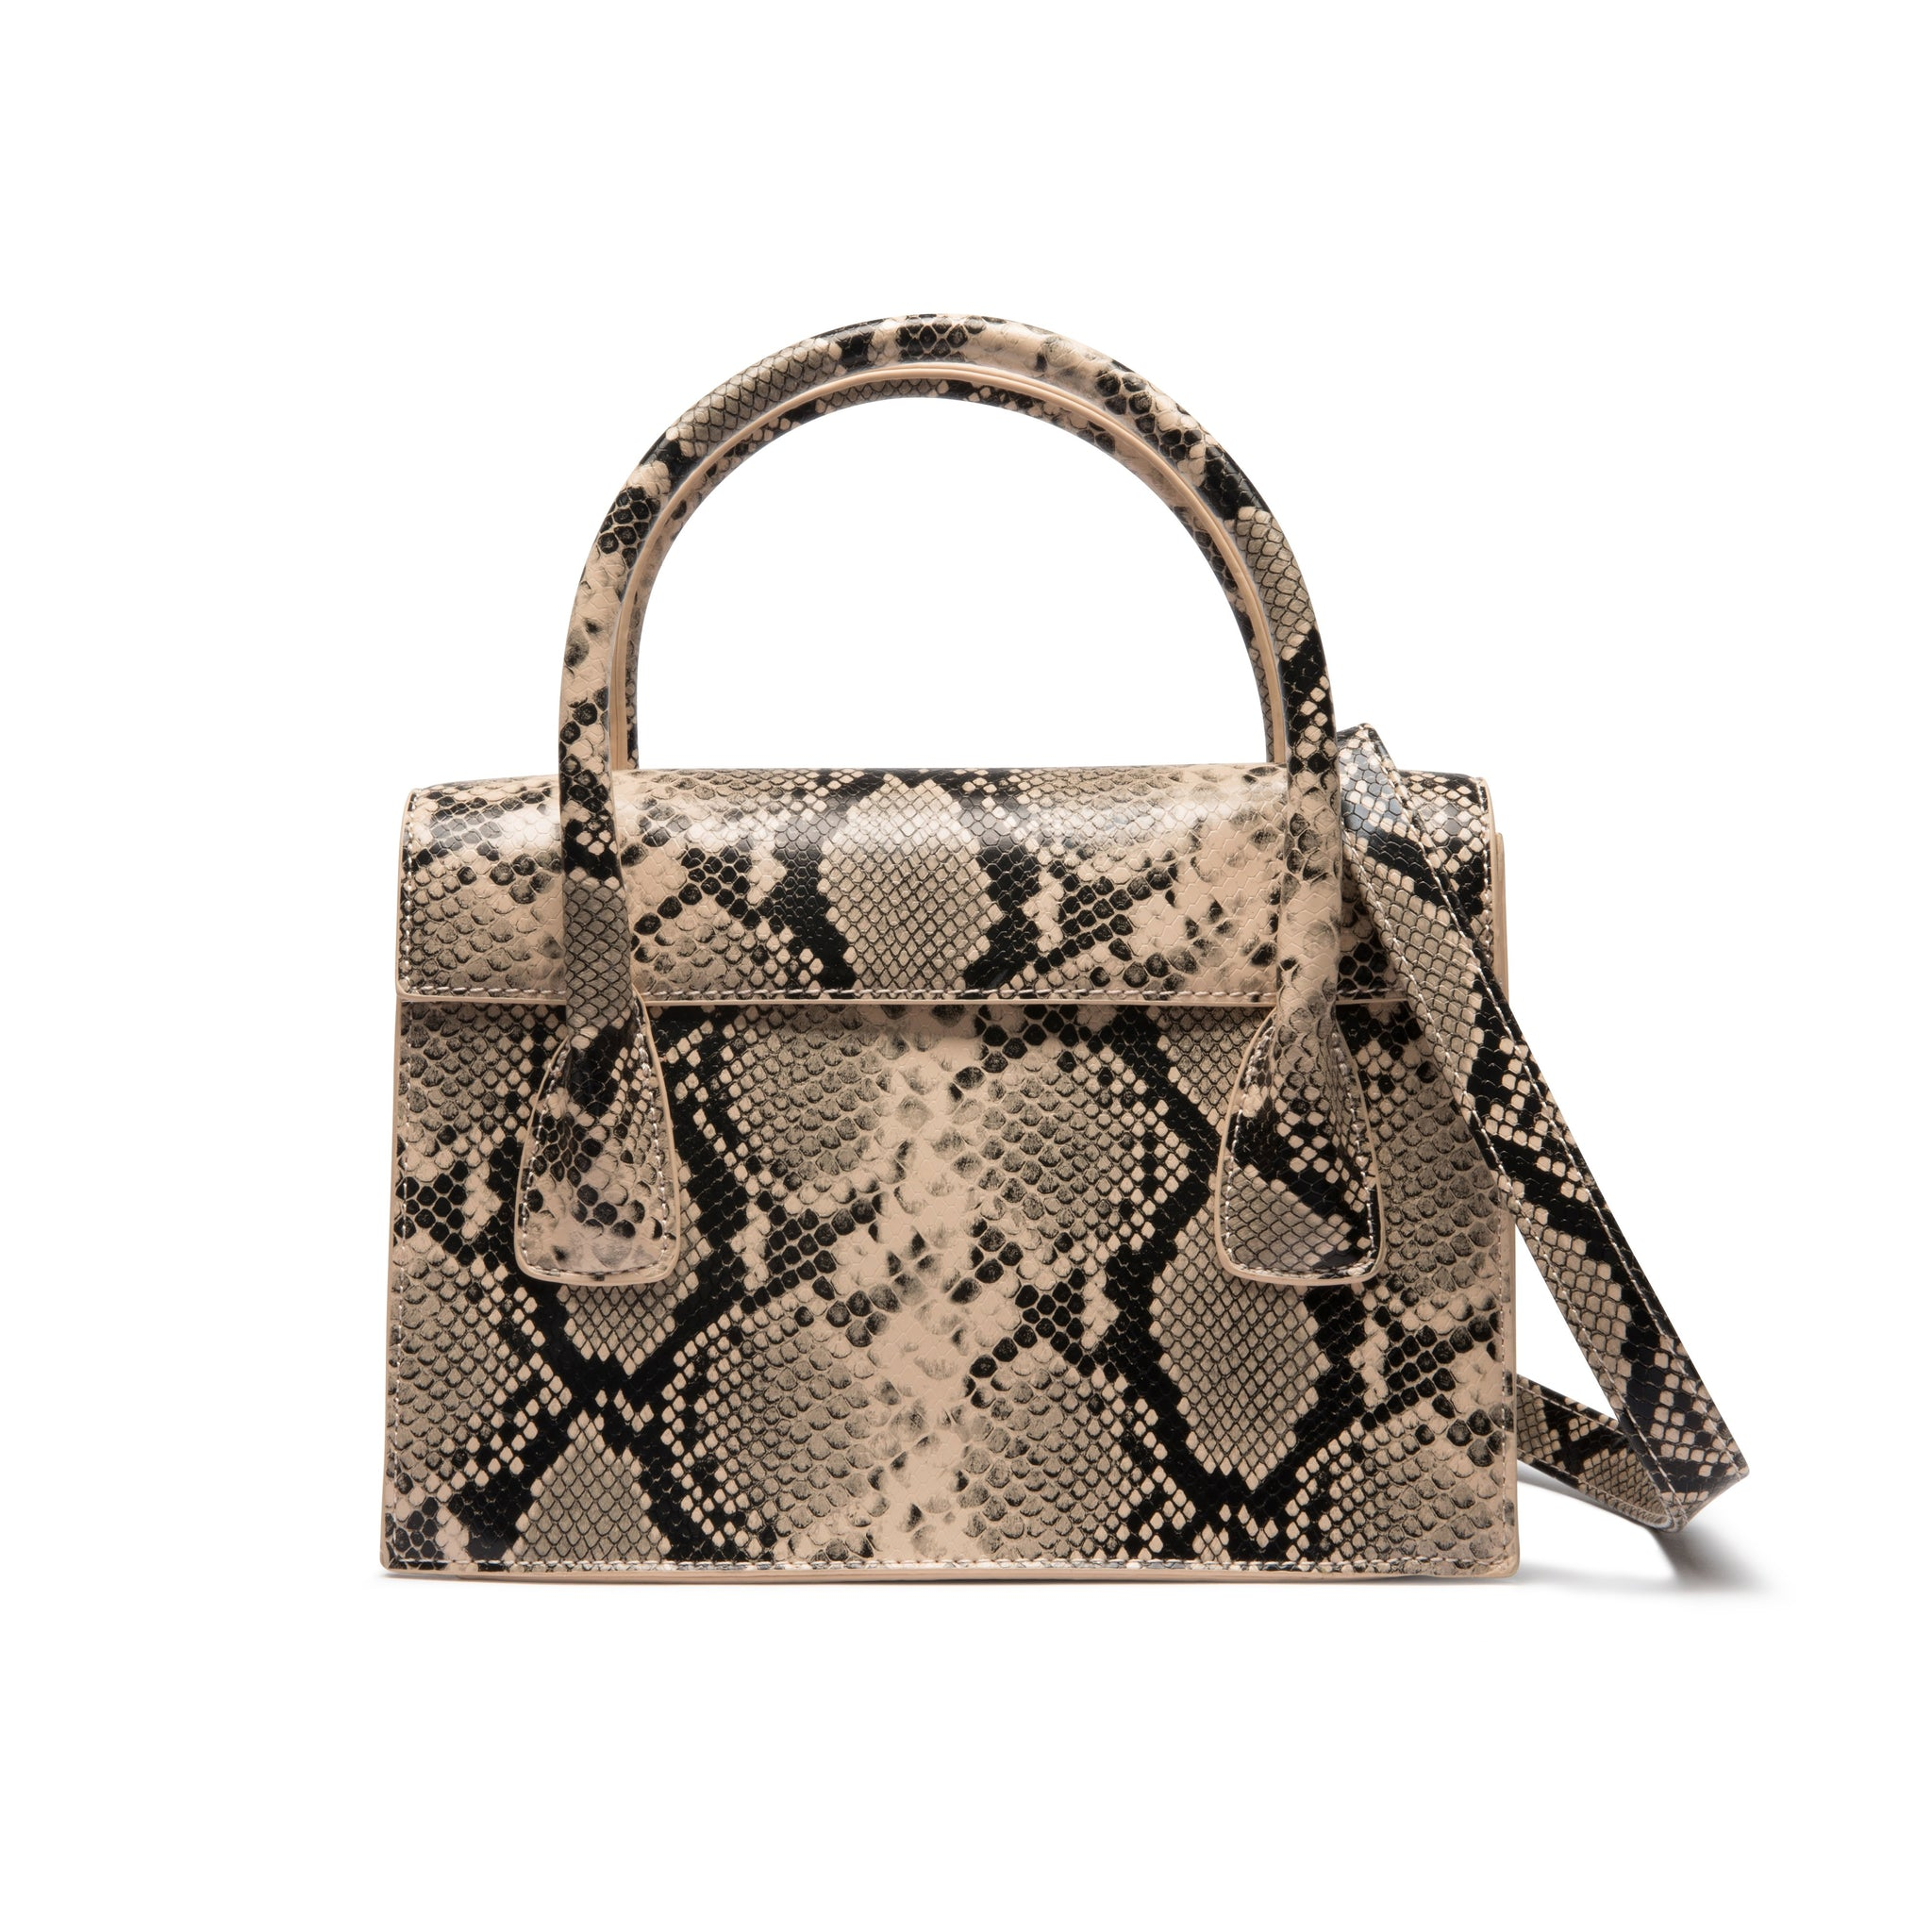 Arabella Crossbody Bag (Cream/ Black Snakeskin)